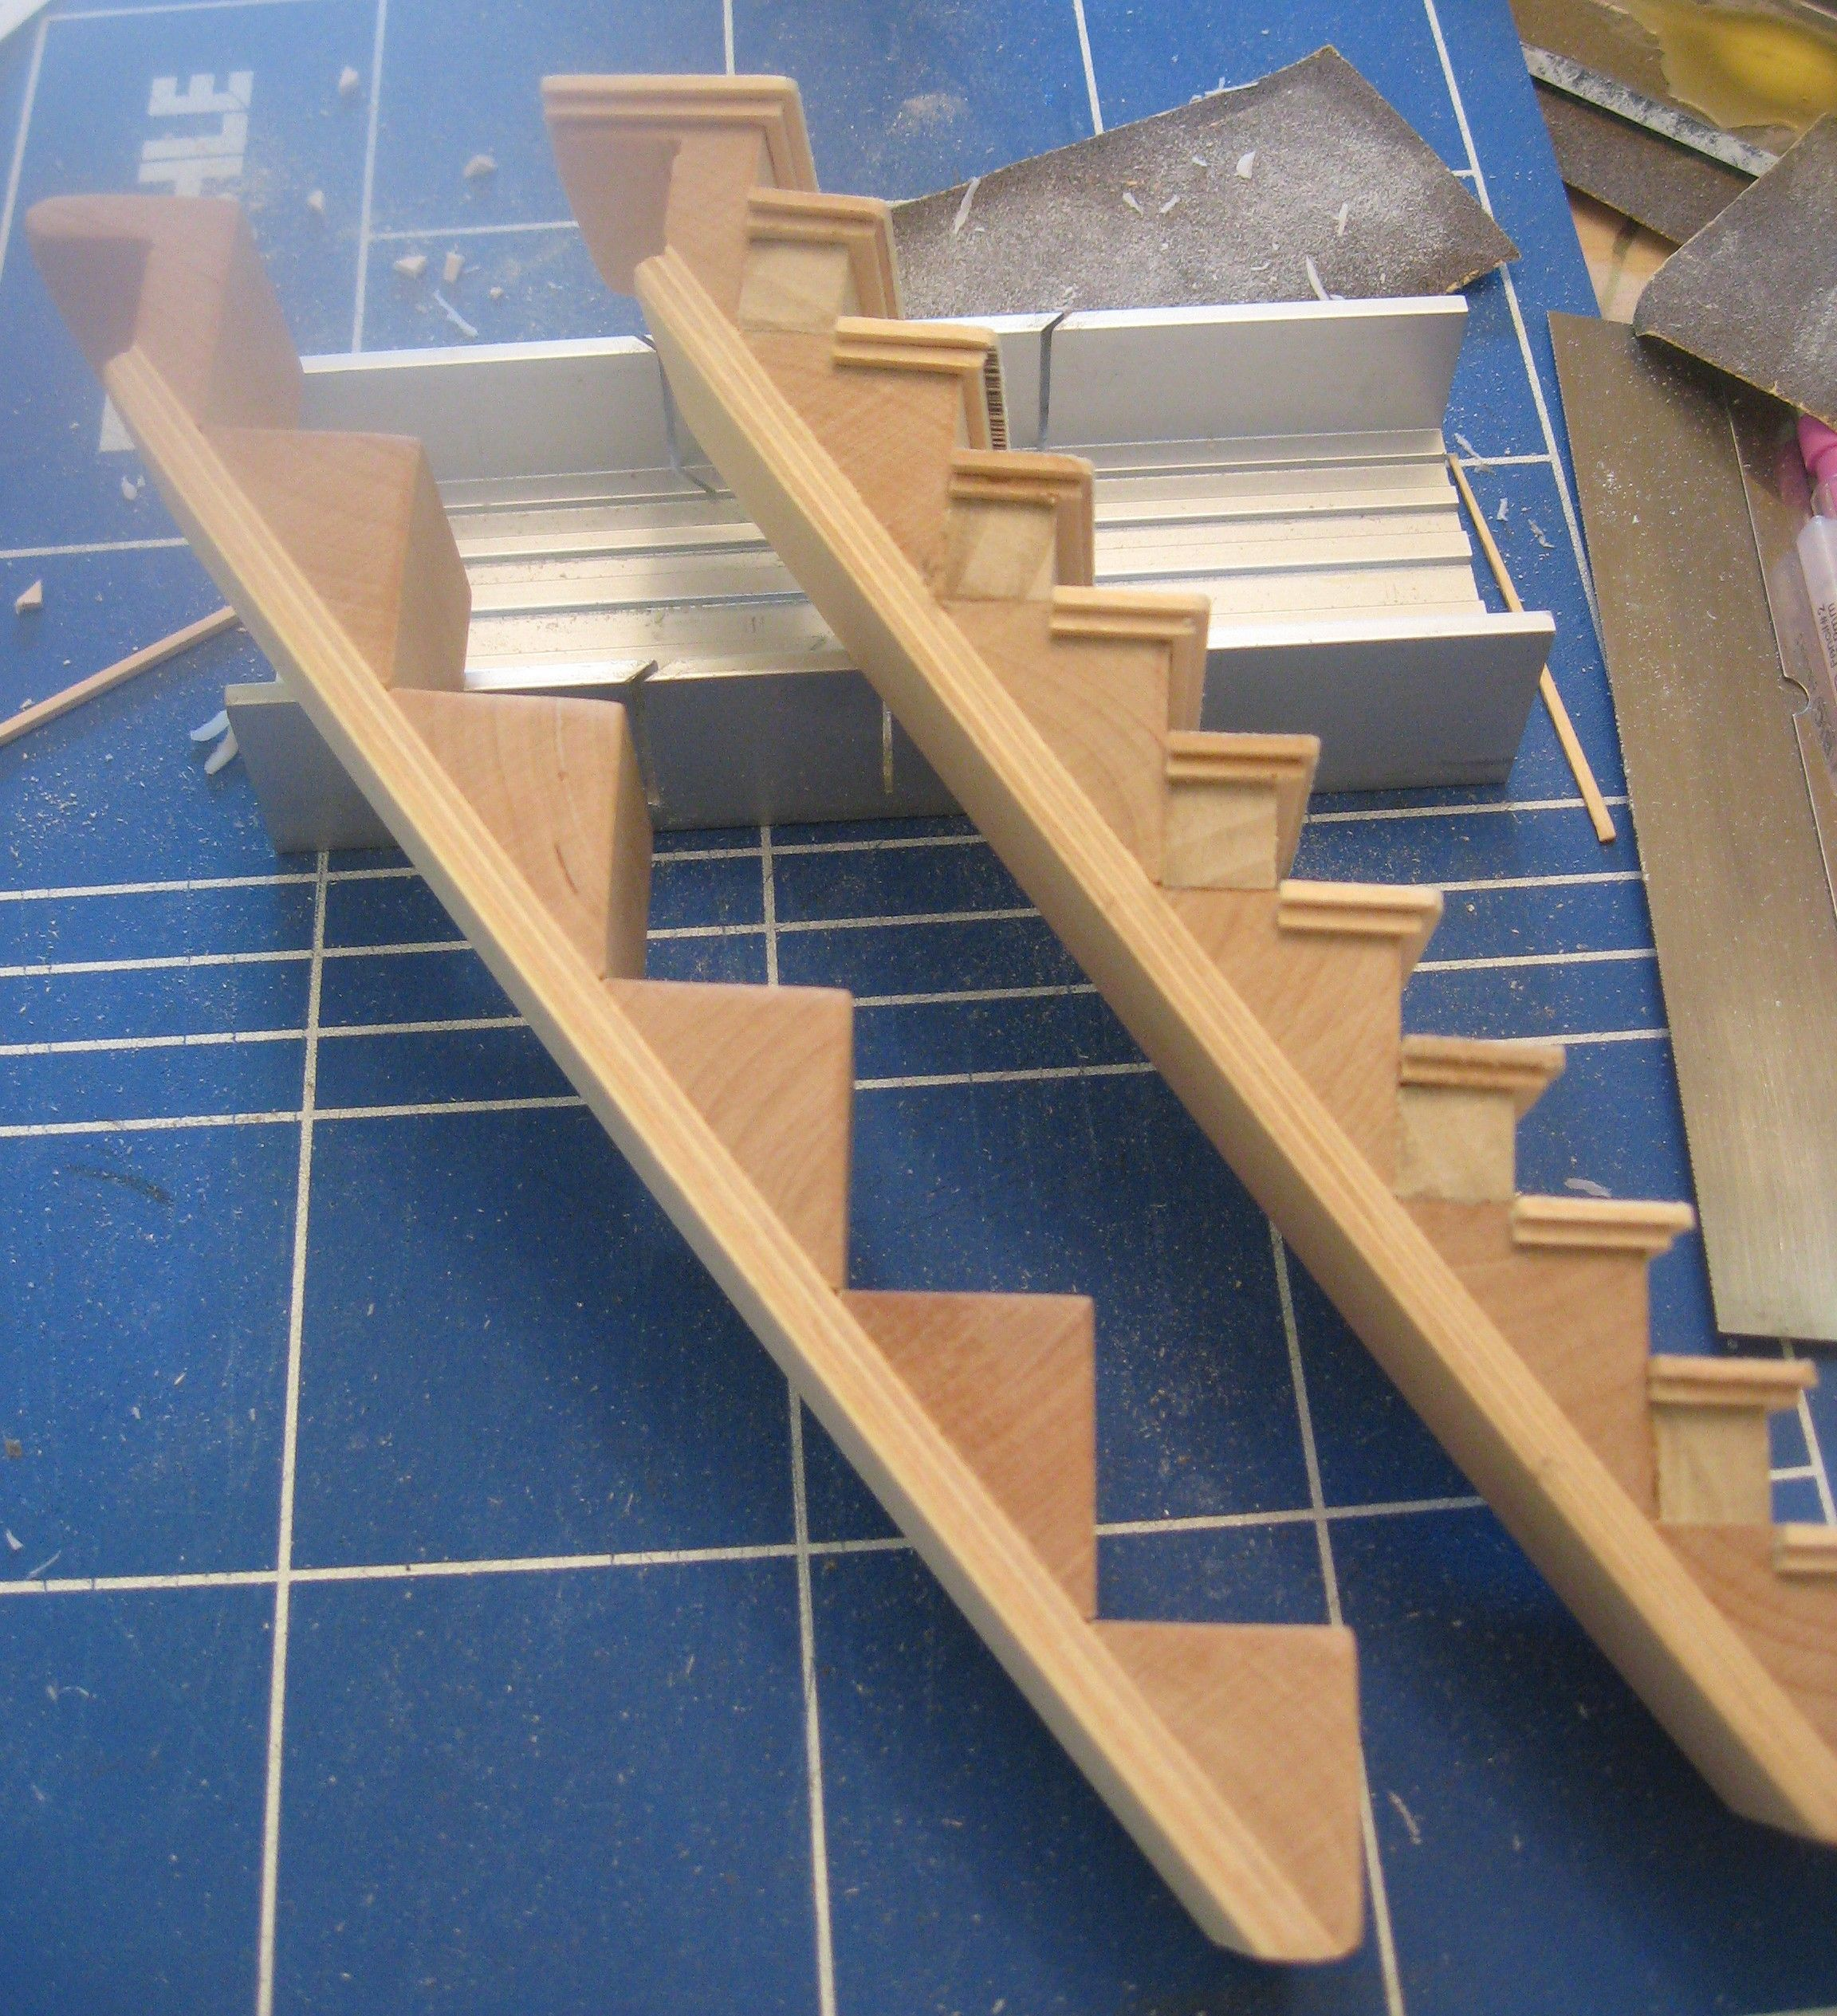 Reworking 1 12 Stairs To 1 24 Scale Dollhouse Staircase